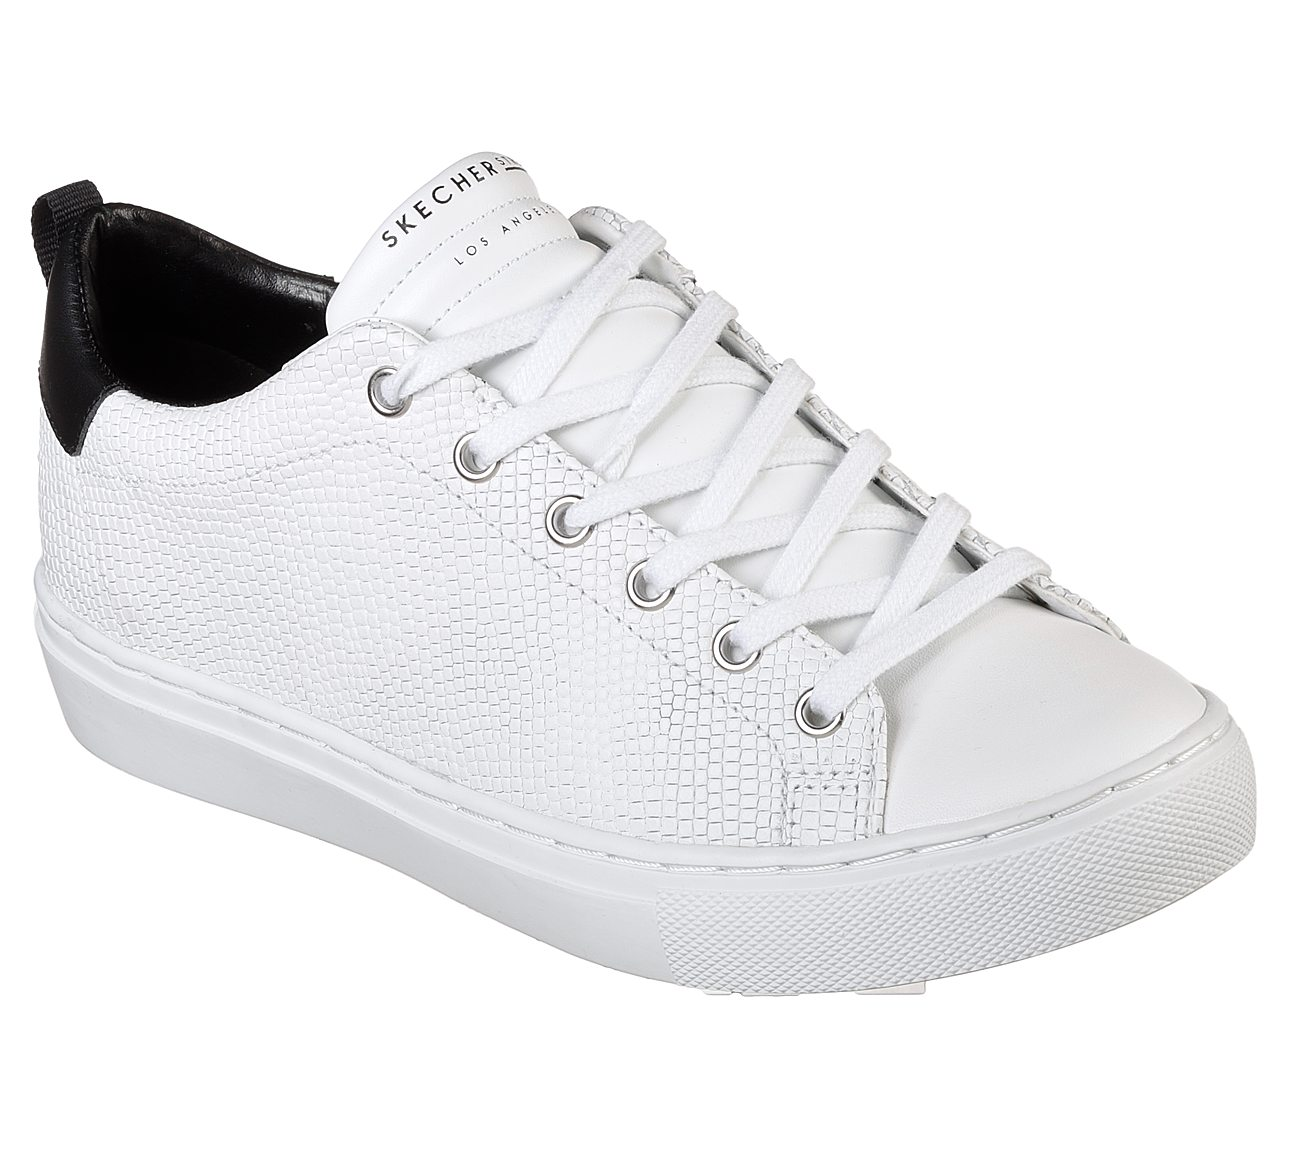 8d6db536 Buy SKECHERS Side Street - Tegu Lace-Up Sneakers Shoes only $35.00